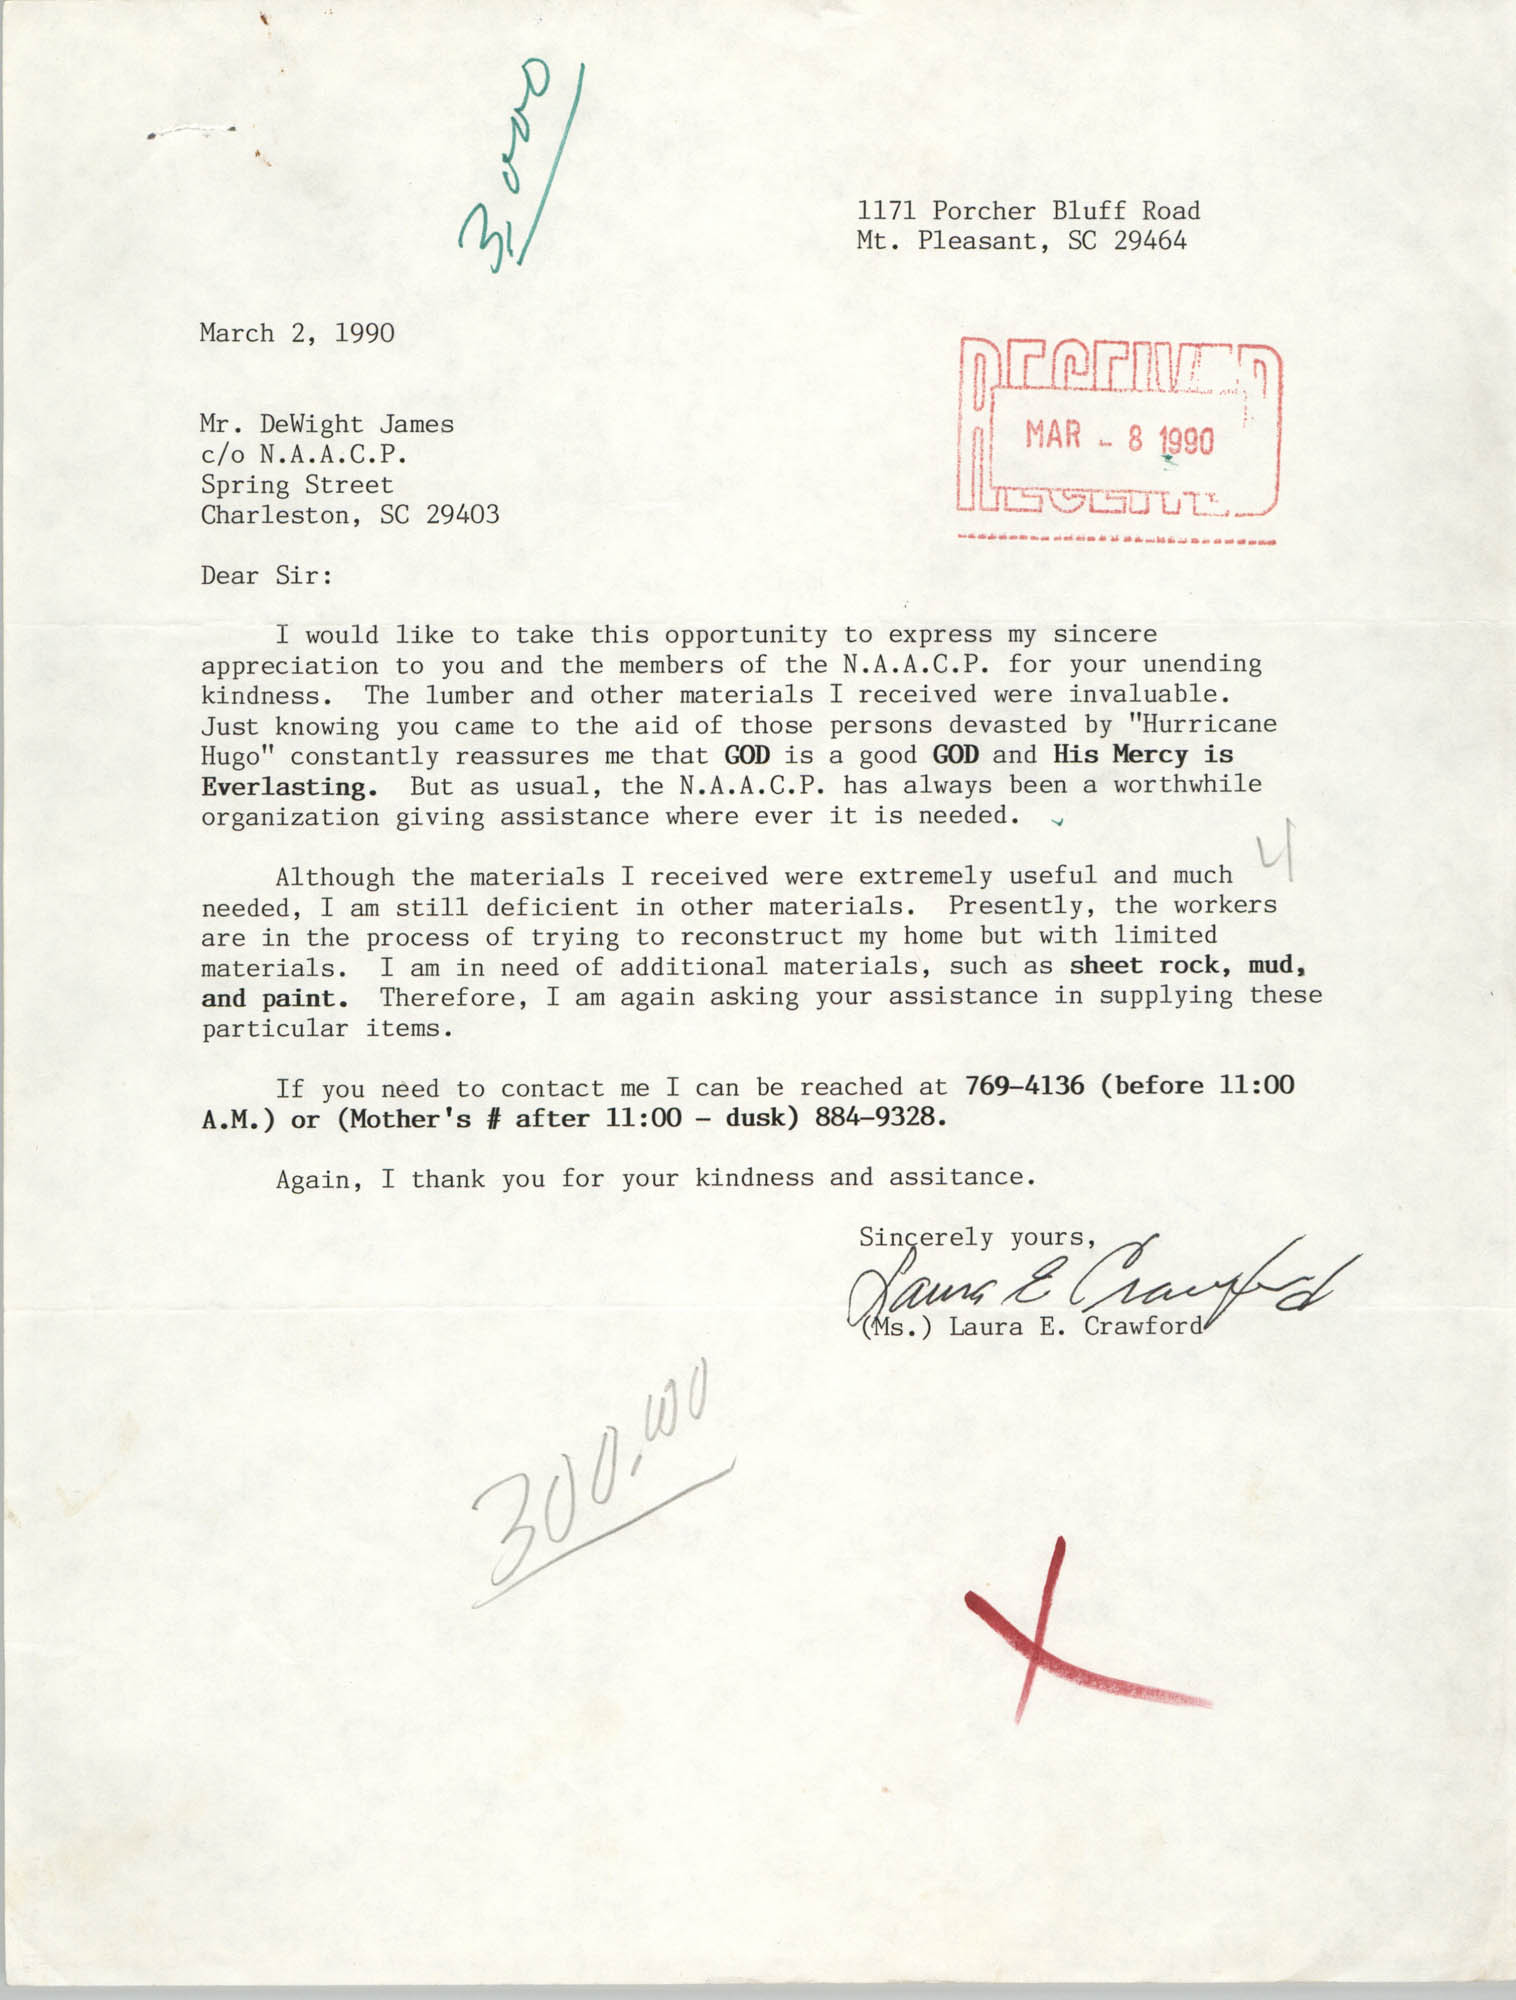 Letter from Laura E. Crawford to DeWight James, March 2, 1990